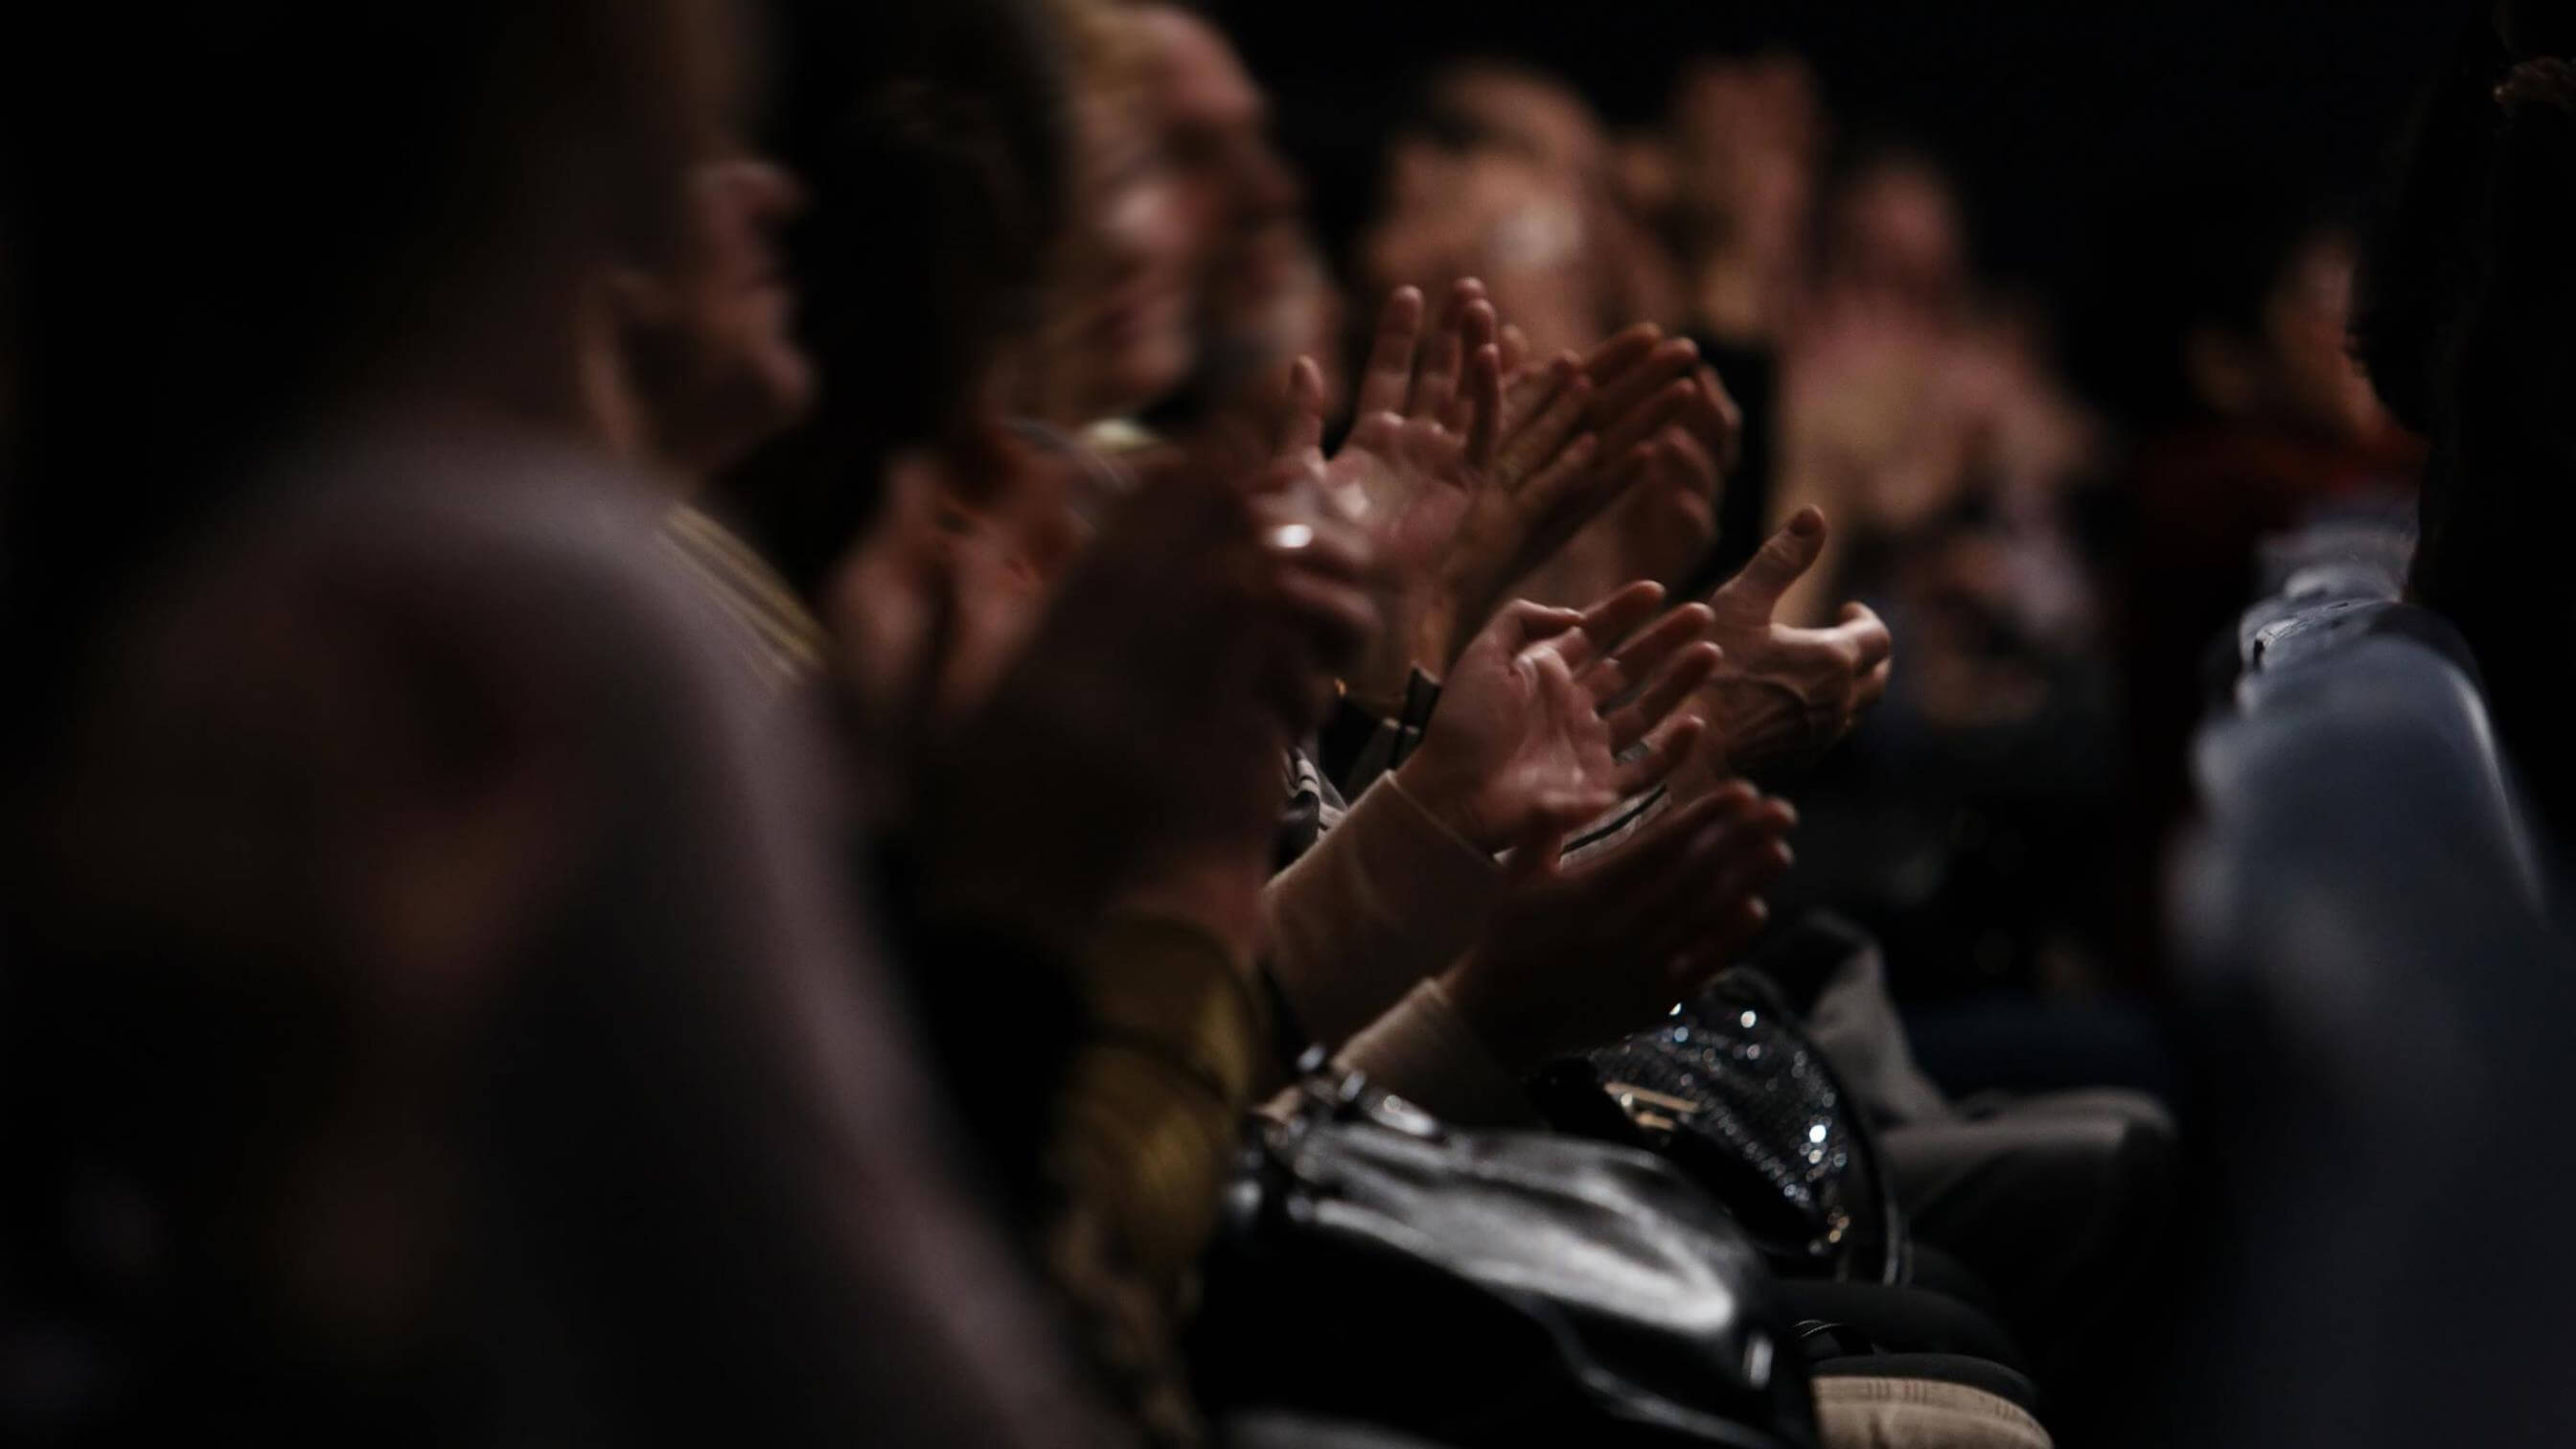 Audience clapping in darkened theatre